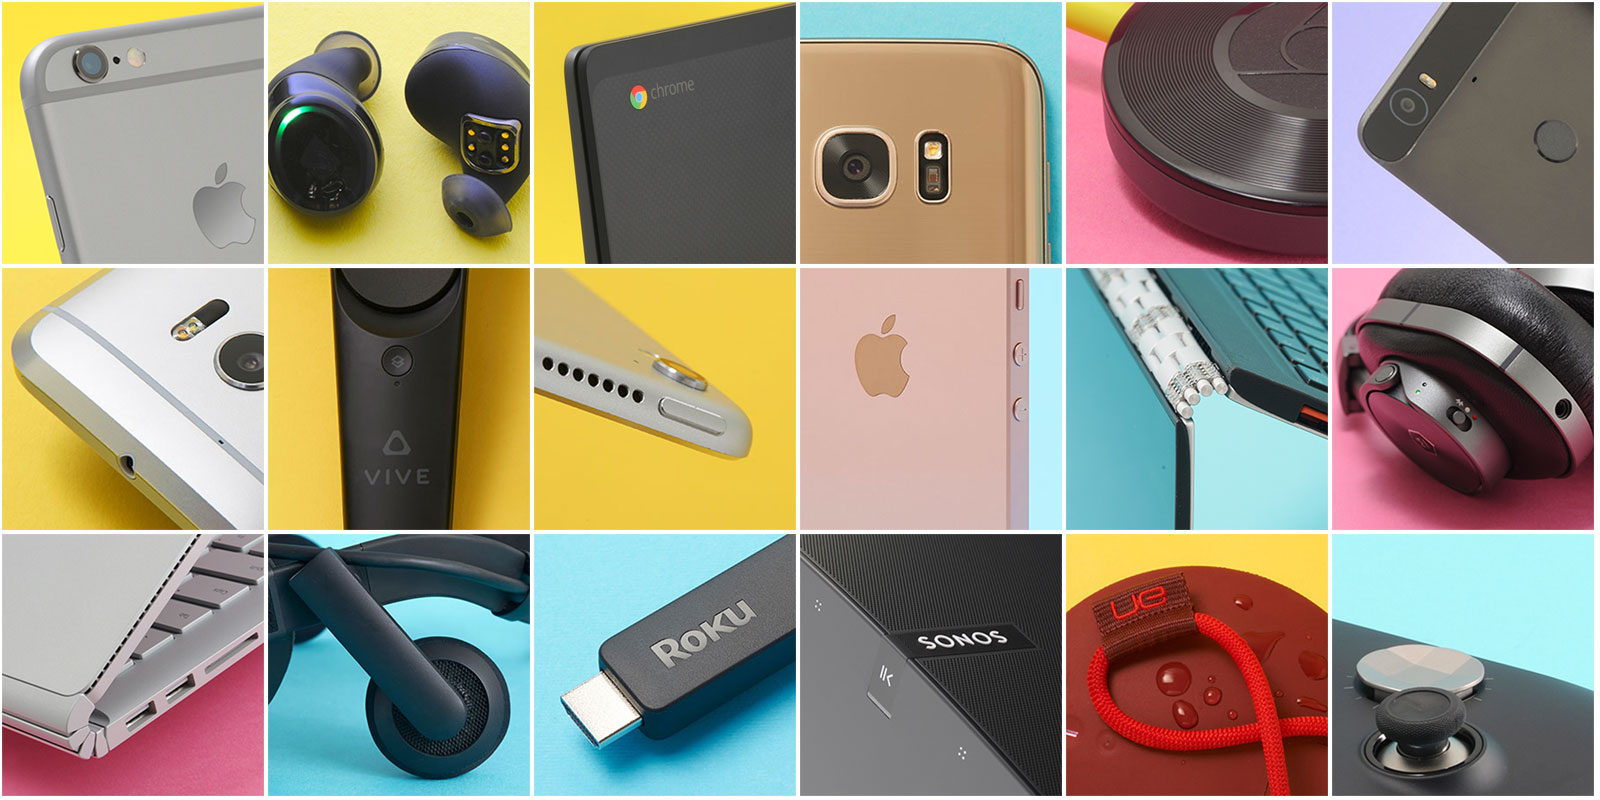 New in our buyer's guide: All the phones (just the good ones)